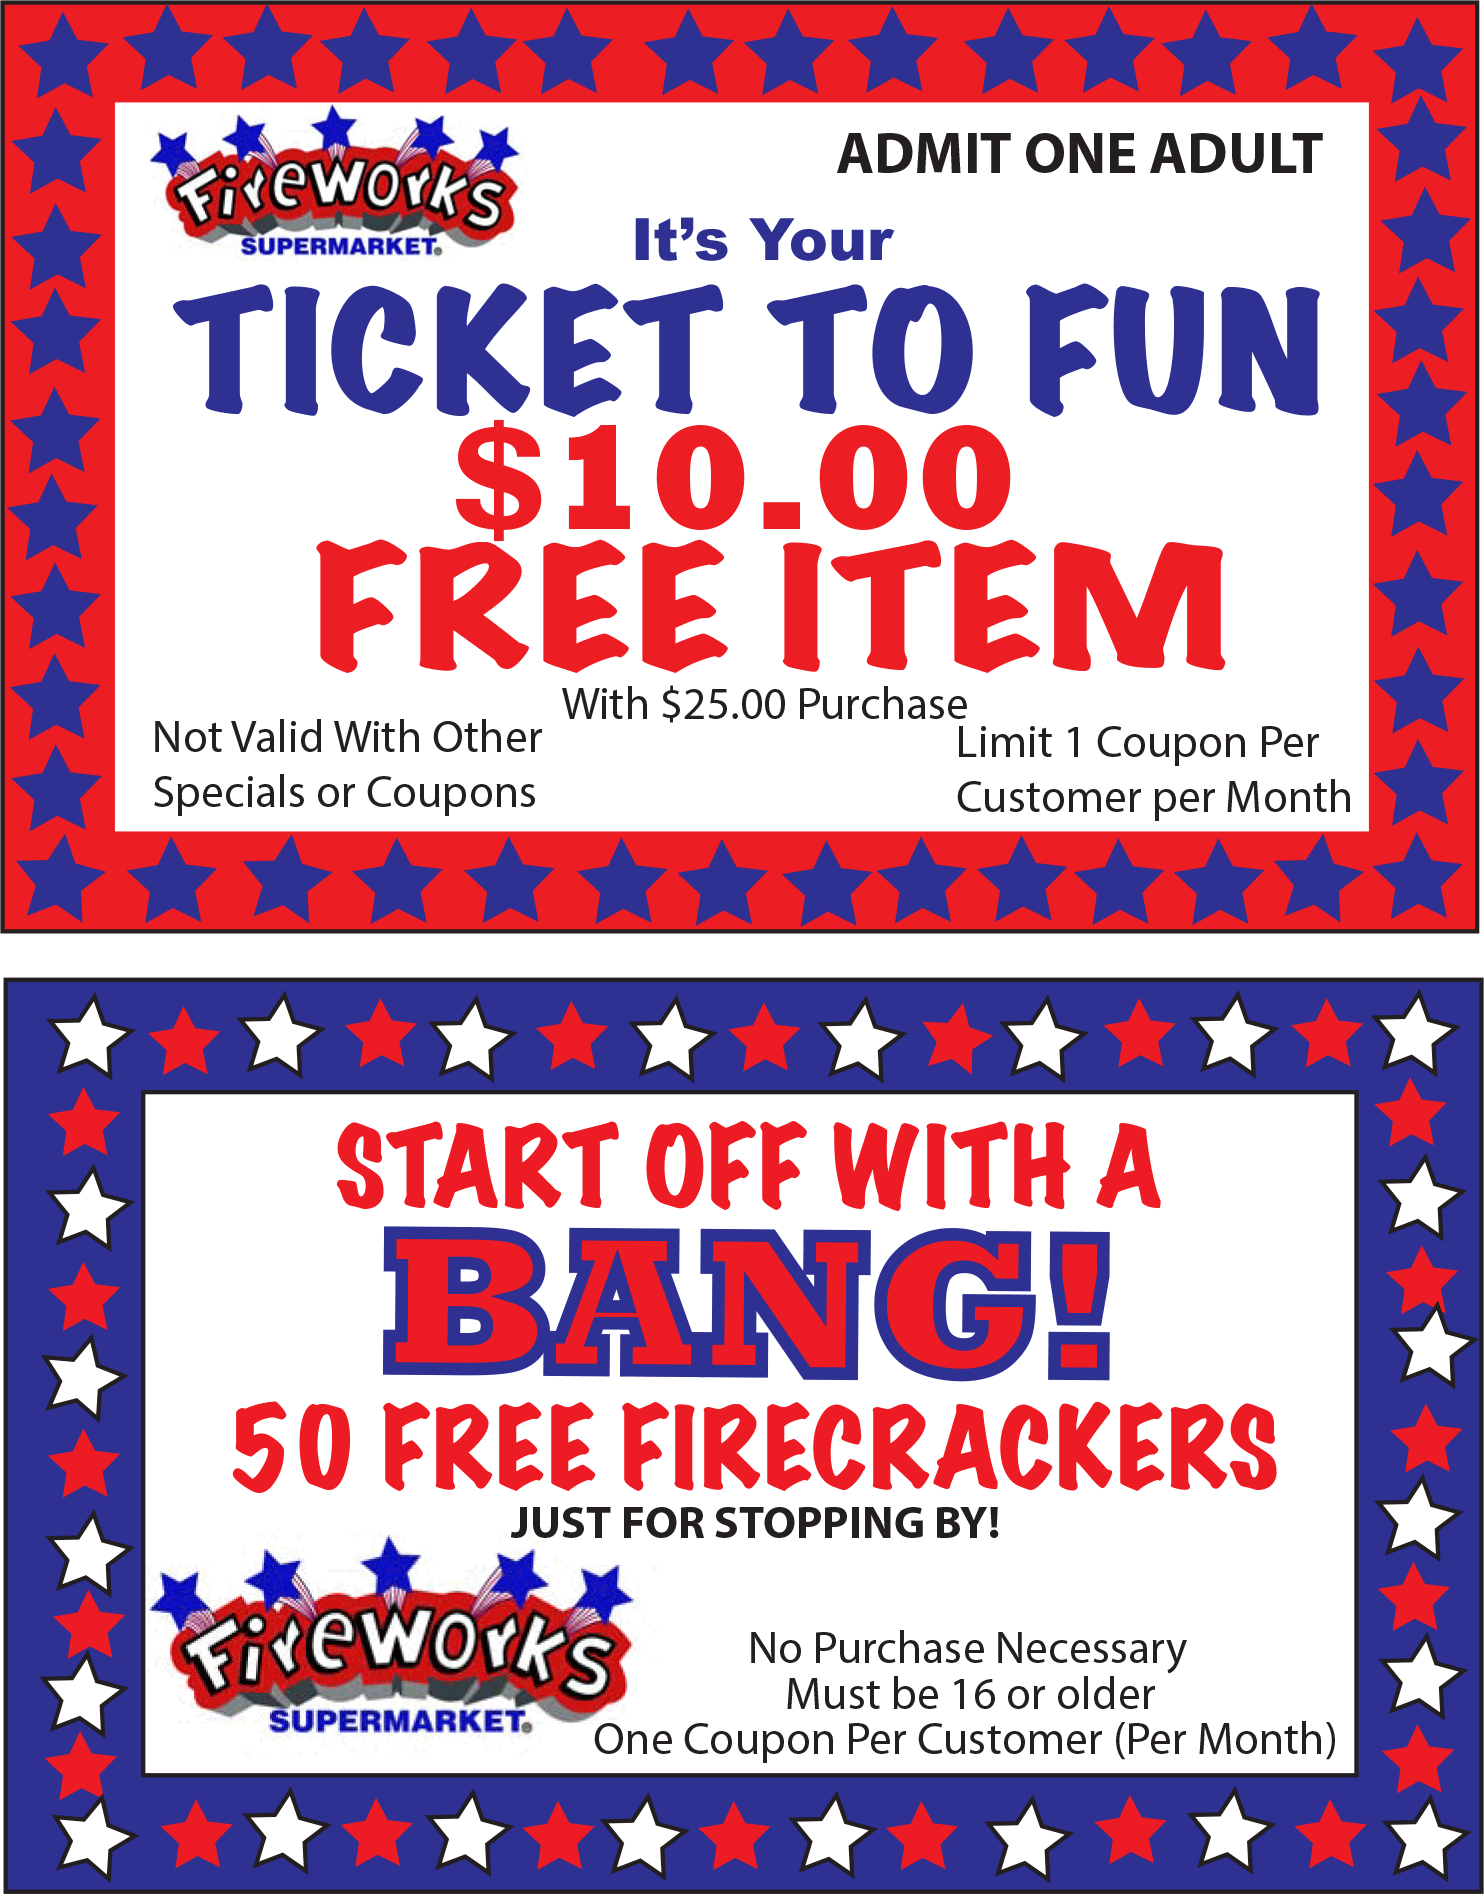 Fireworks Supermarket Coupon October 2016 $10 item free with $25 spent at Fireworks Supermarket